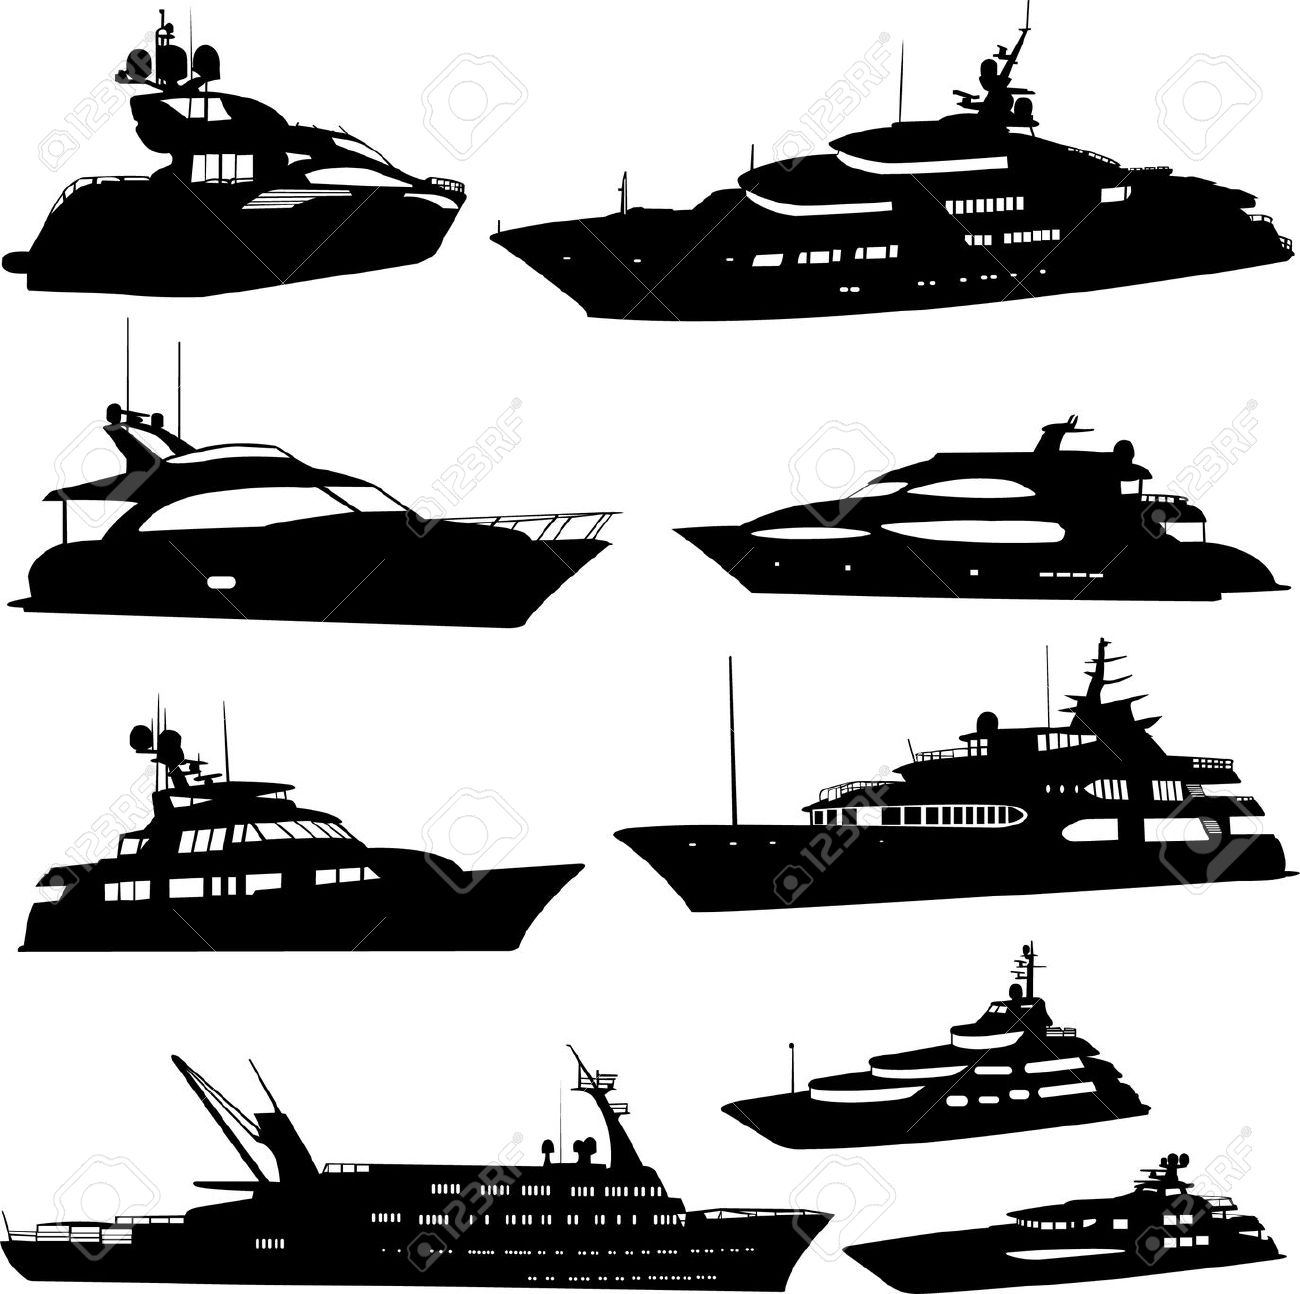 Motor Yacht Collection Royalty Free Cliparts, Vectors, And Stock.